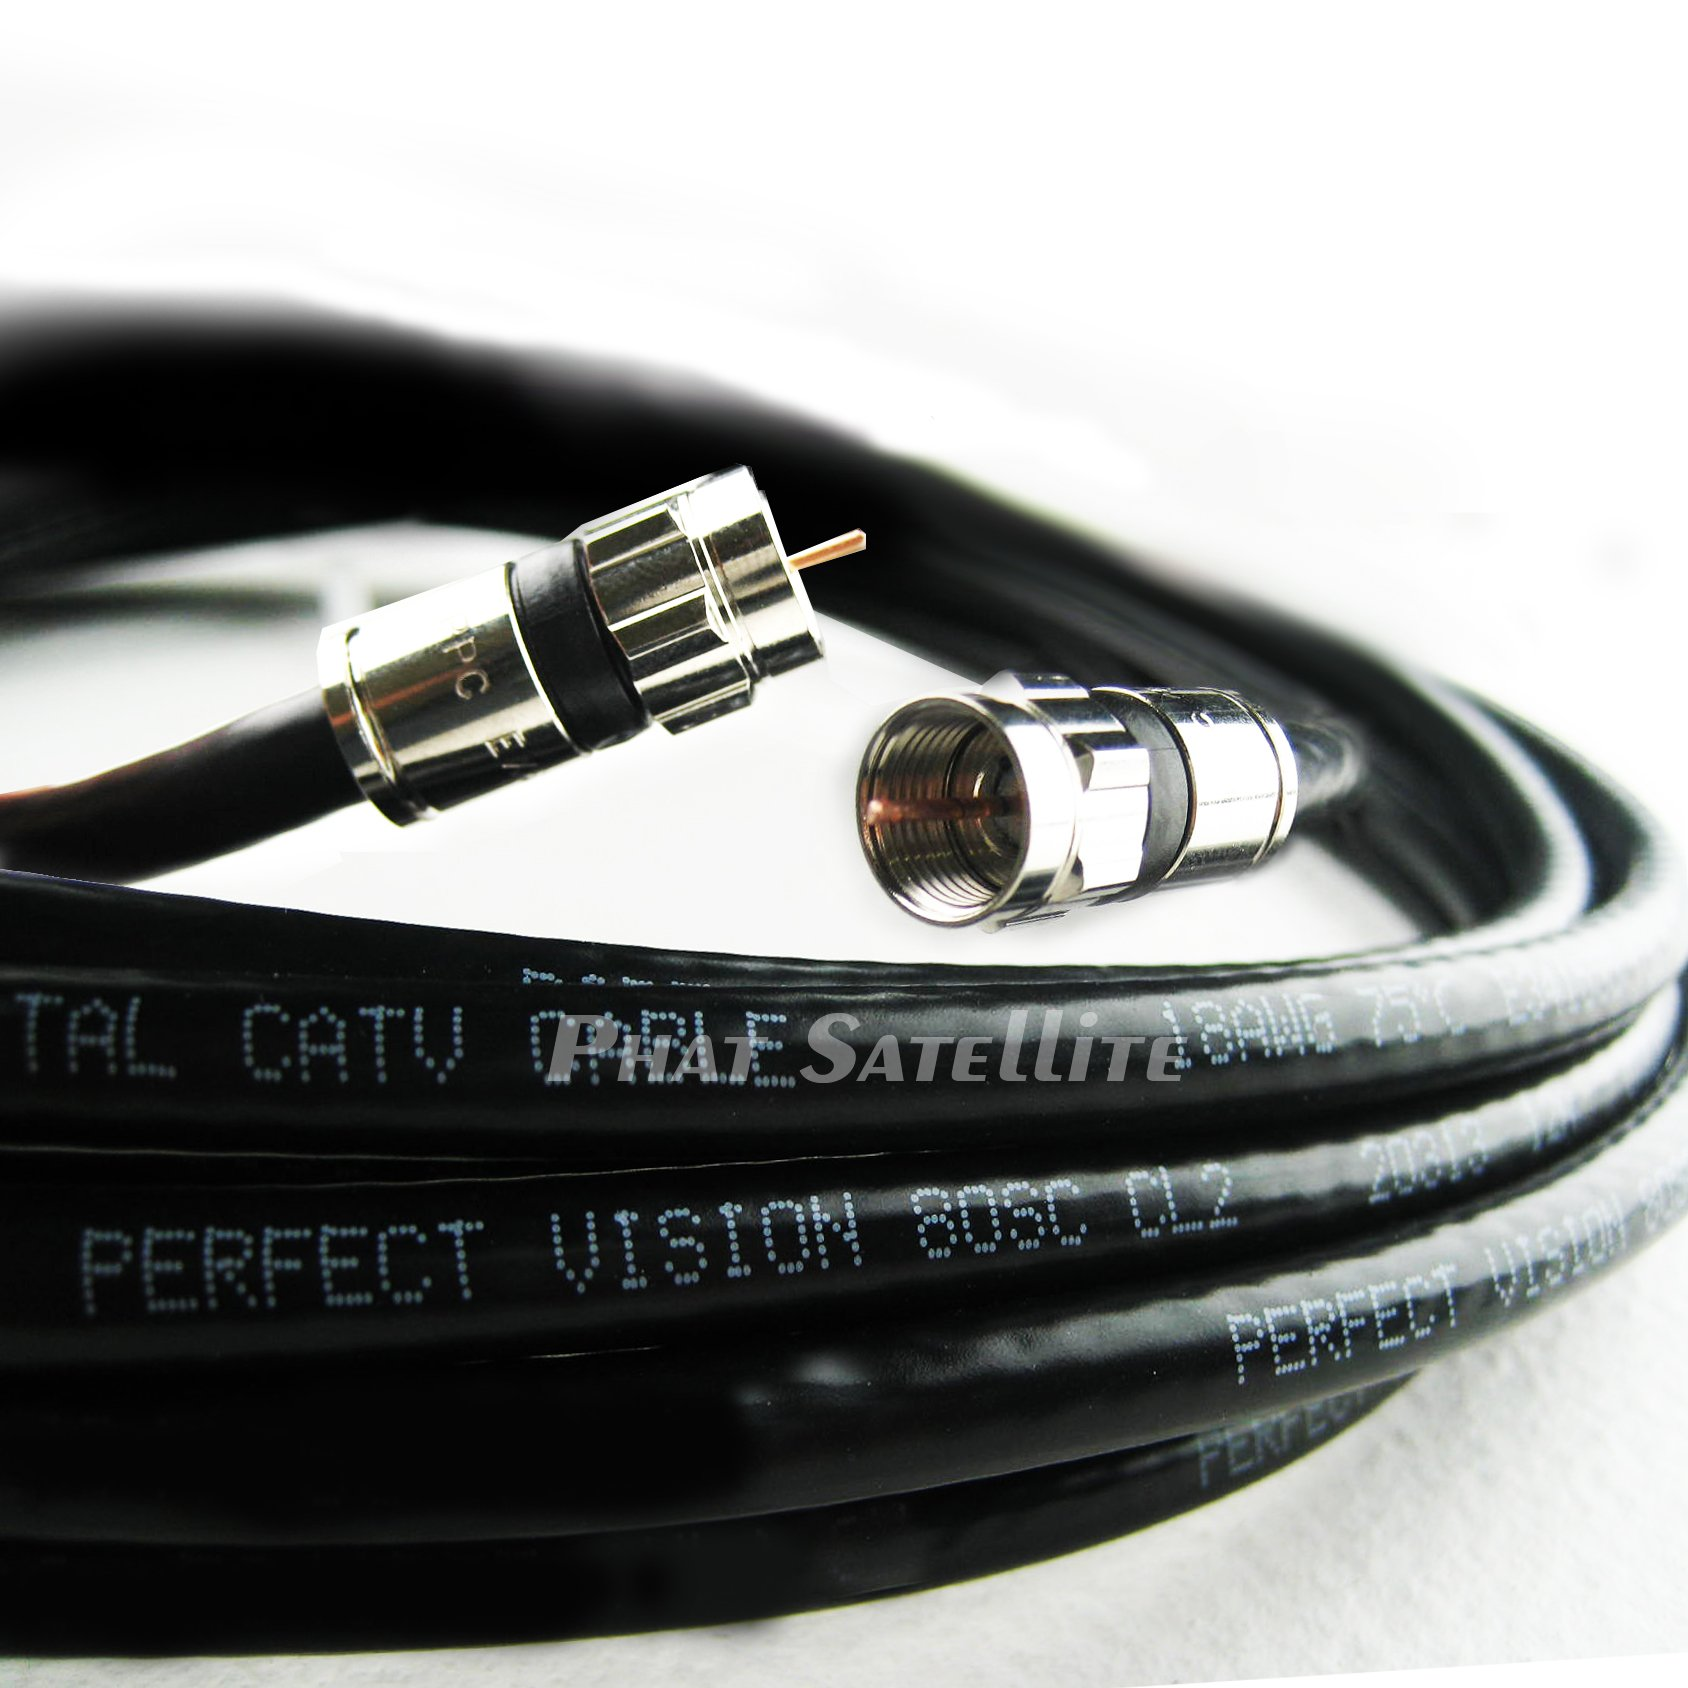 100ft Black Perfect Vision Solid Copper UL CM CL2 rated for in wall installation 3ghz 75 Ohm Coaxial Rg6 Directv, Dish Network, Digital Cable Tv Video Cable with PPC Compression Rg6 Fittings by Perfect Vision